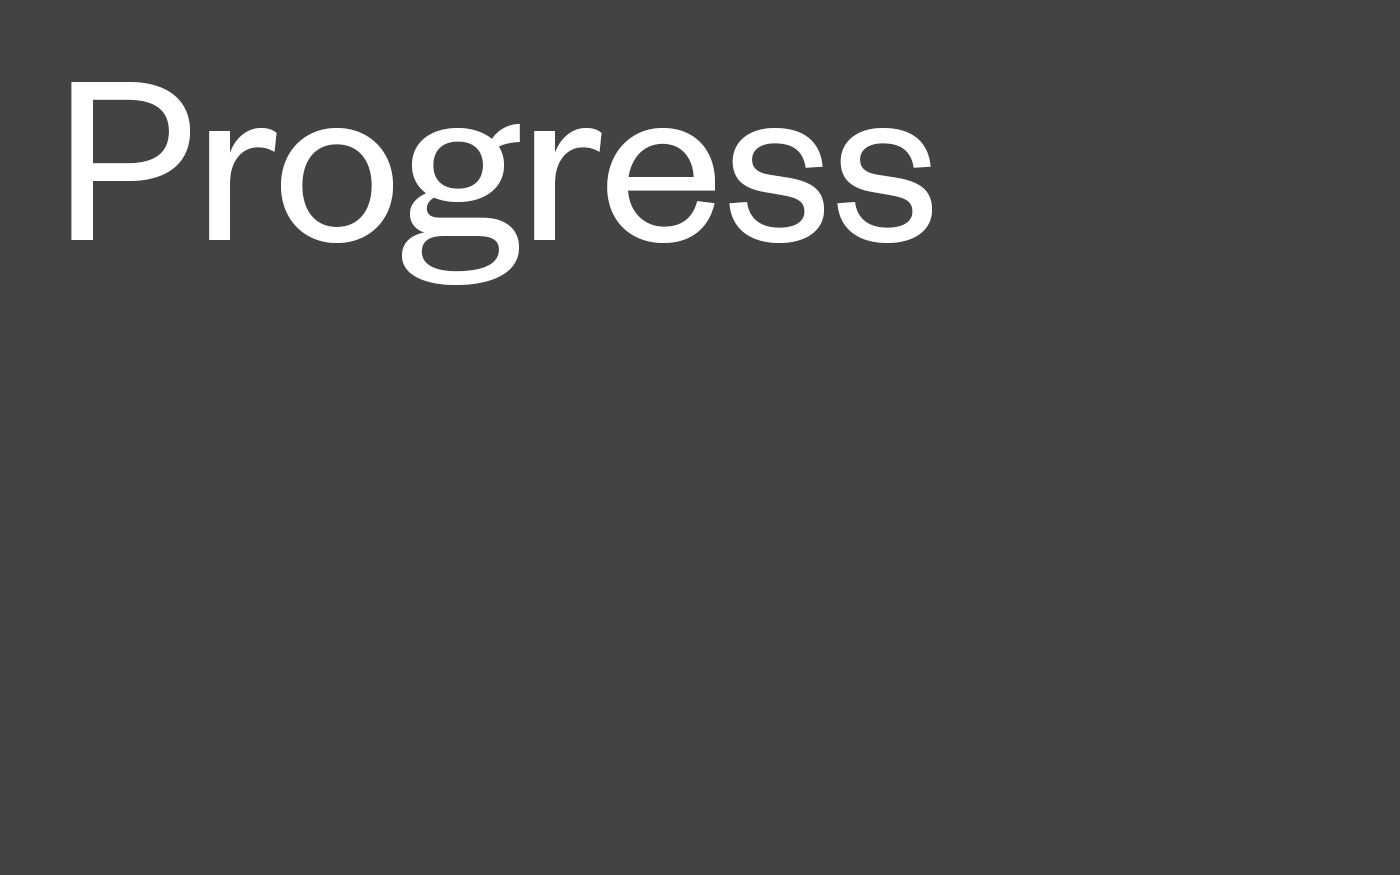 Gray field with white text that reads: Progress